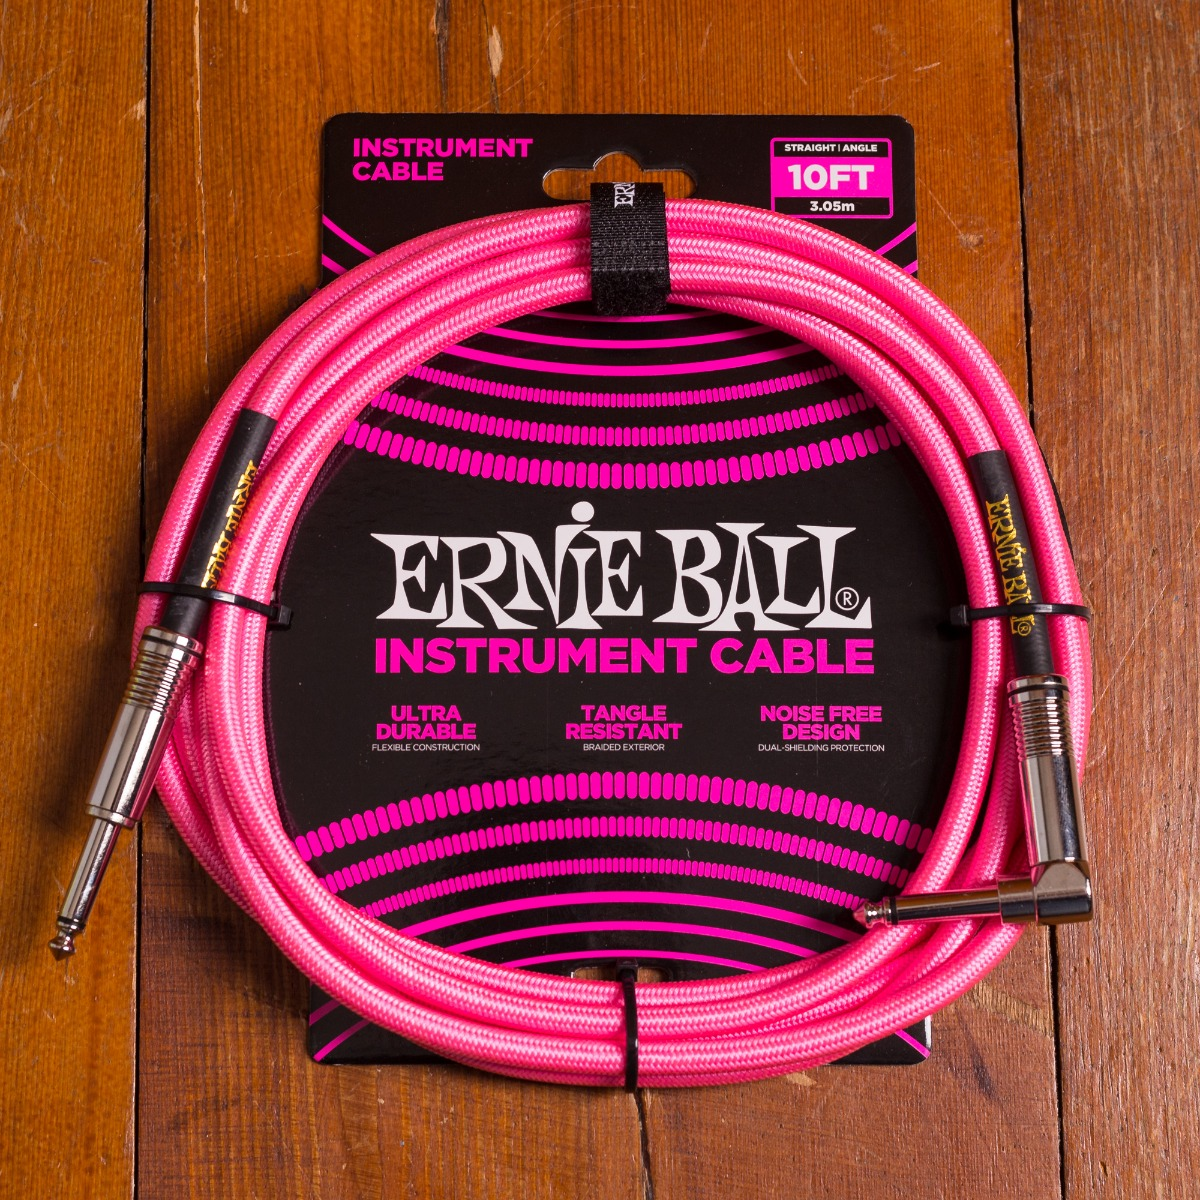 Ernie Ball Braided Cable 3m Pink Angled Straight